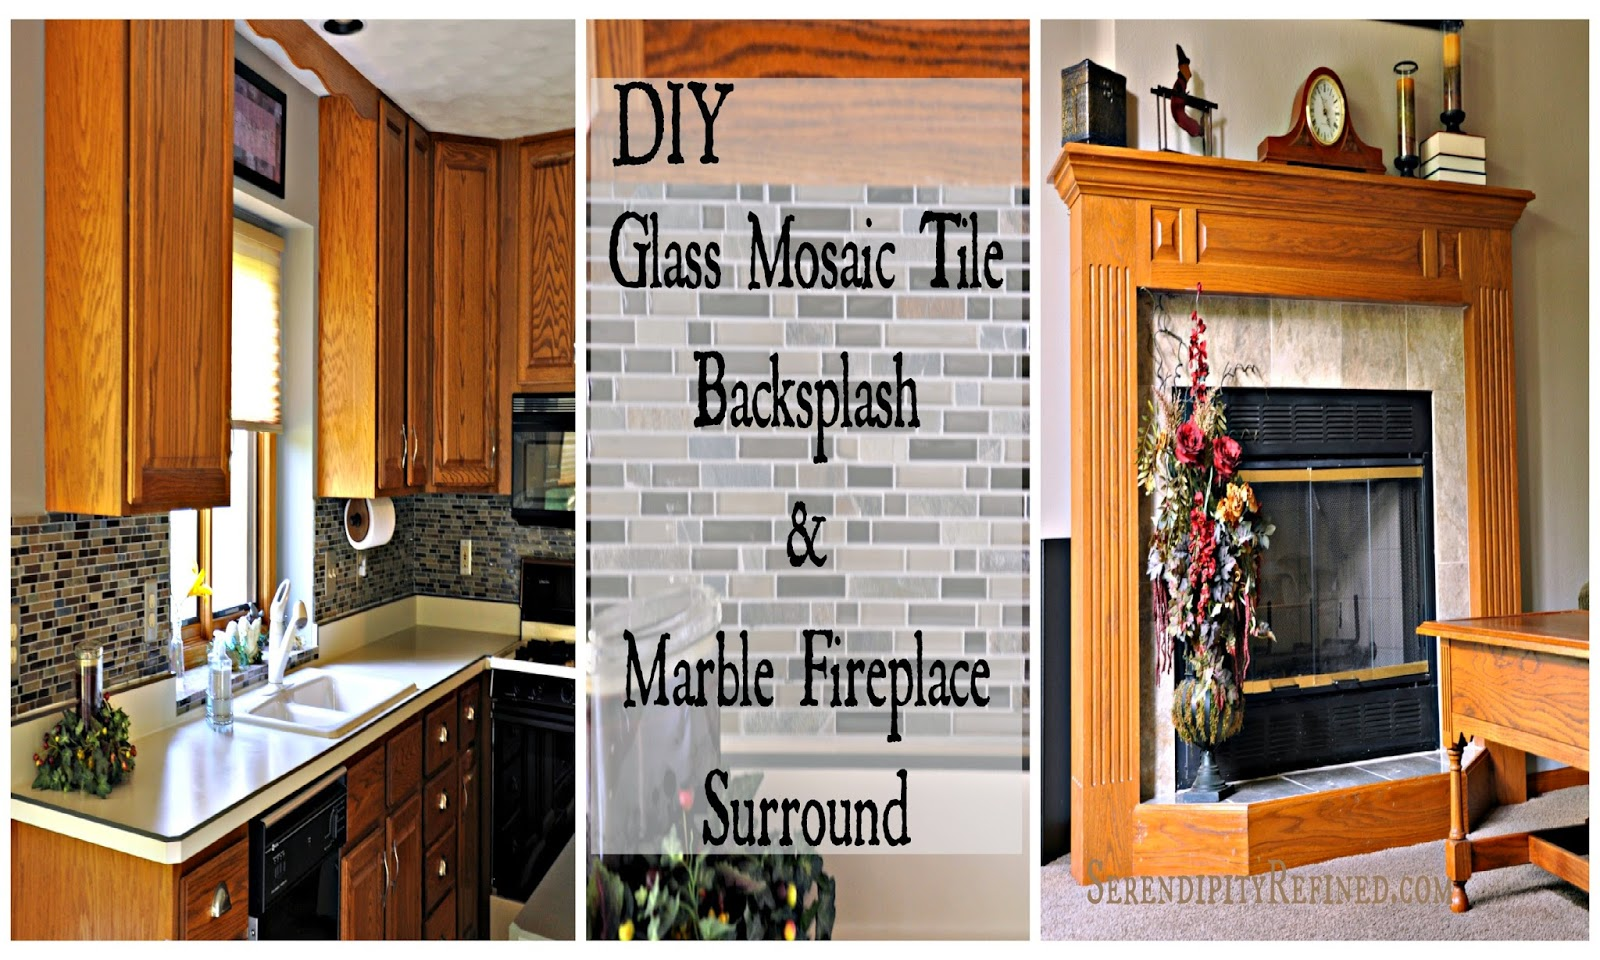 DIY Updates: Glass Mosaic Tile Kitchen Backsplash And Marble Tile Fireplace  Surround